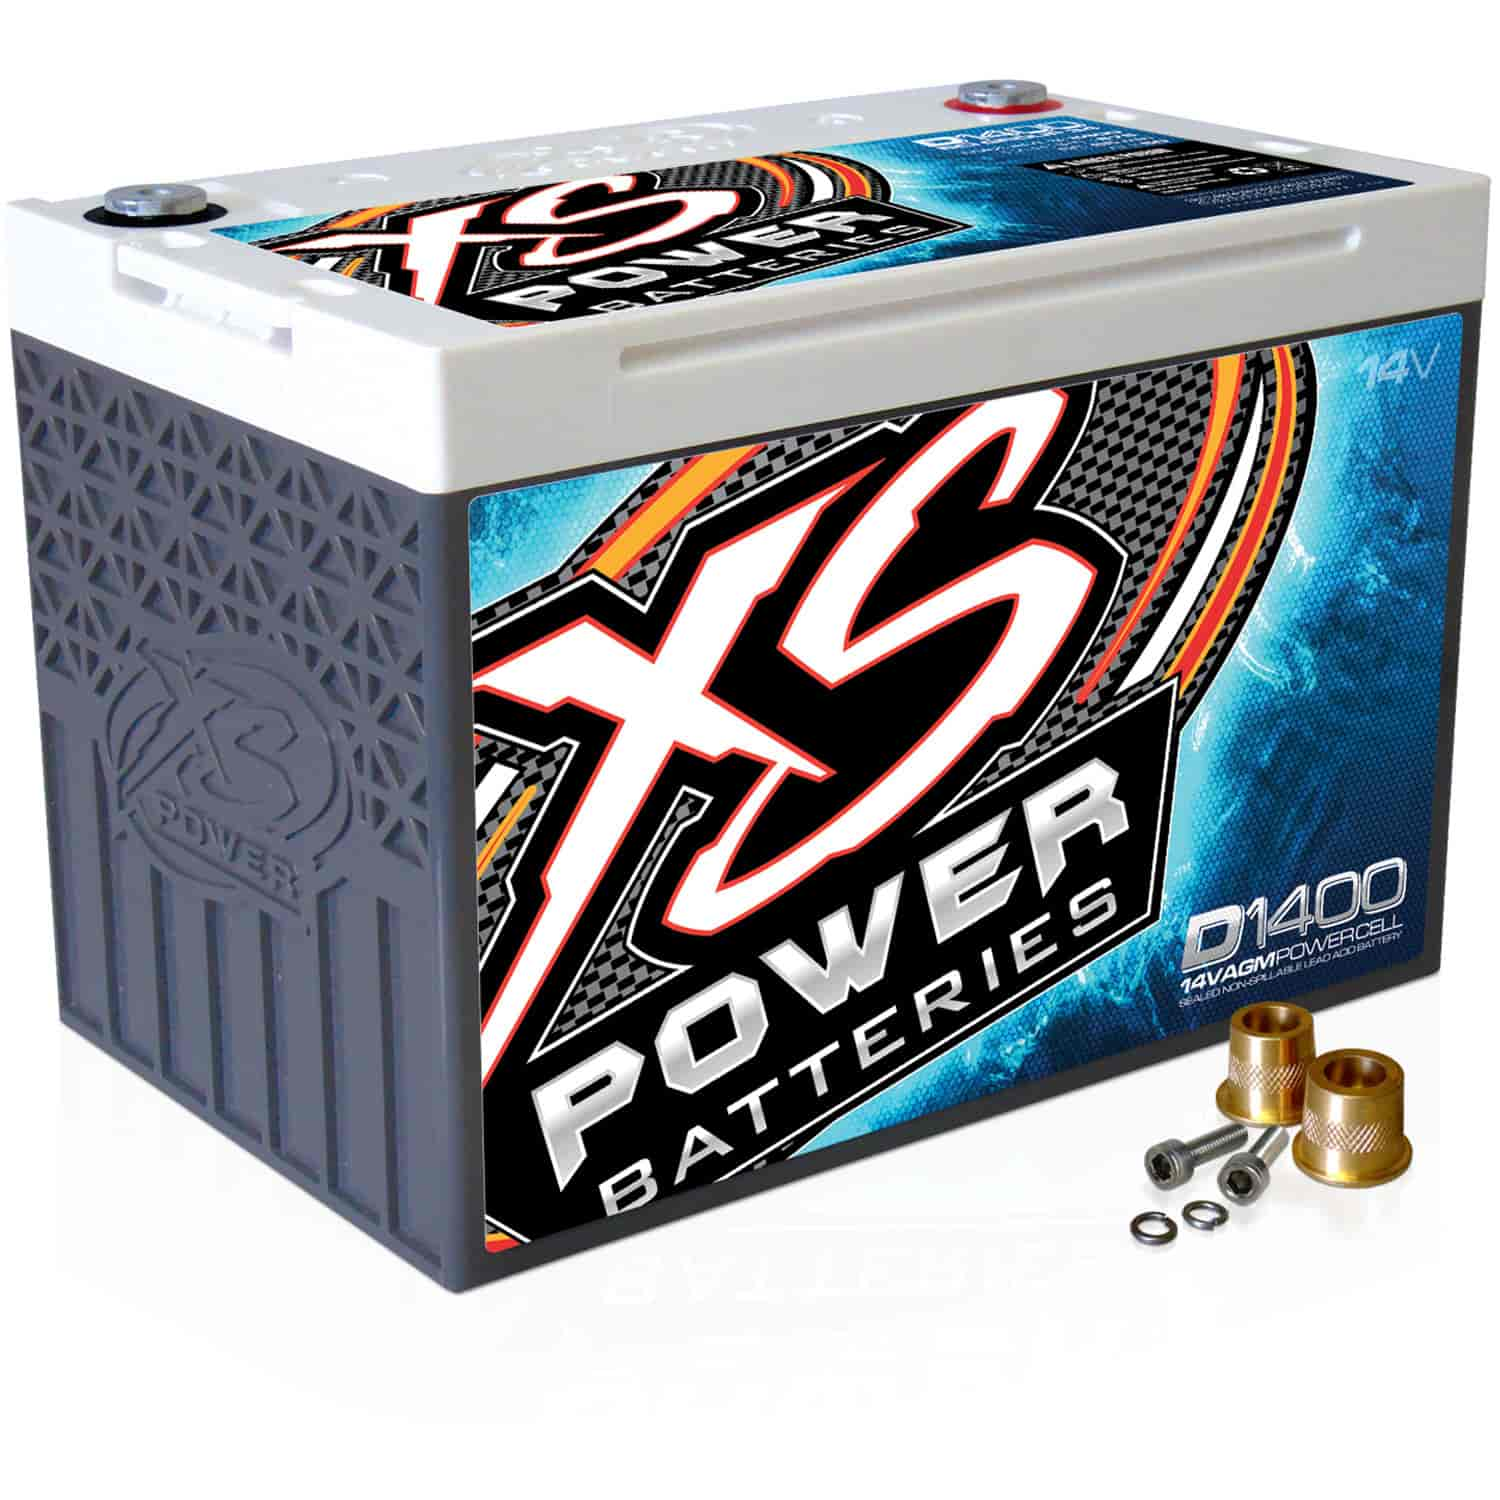 XS Power D1400 - XS Power Batteries